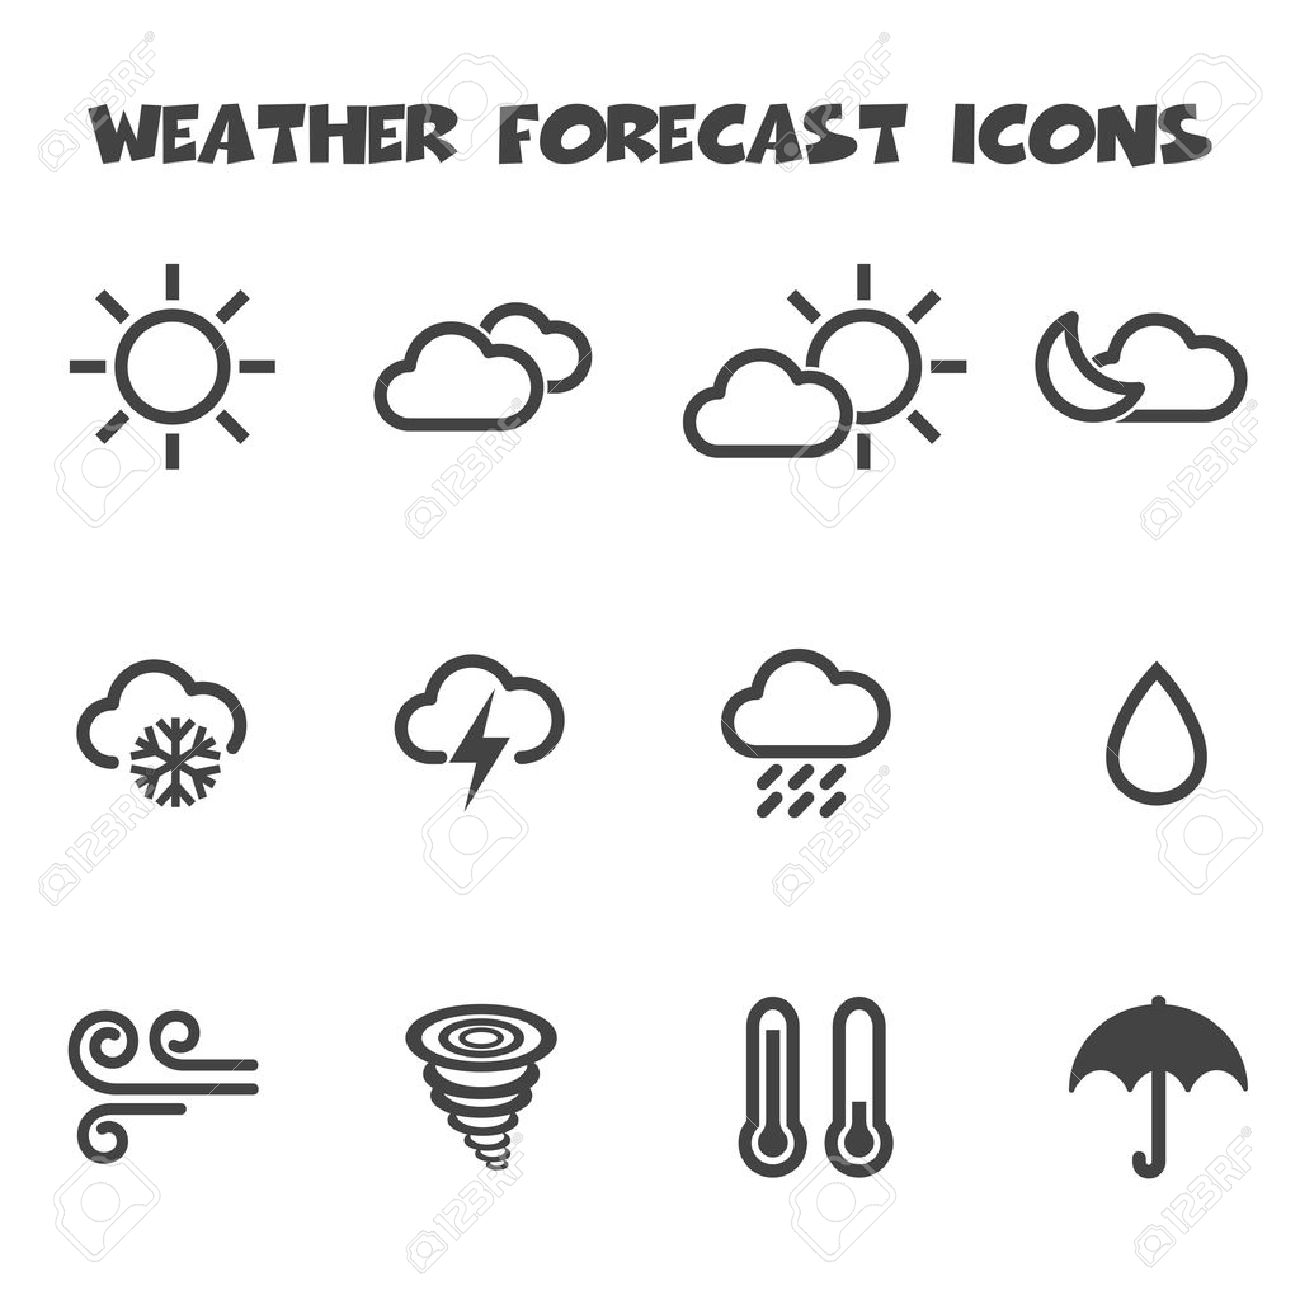 Weather Forecast Icons Mono Vector Symbols Royalty Free Cliparts